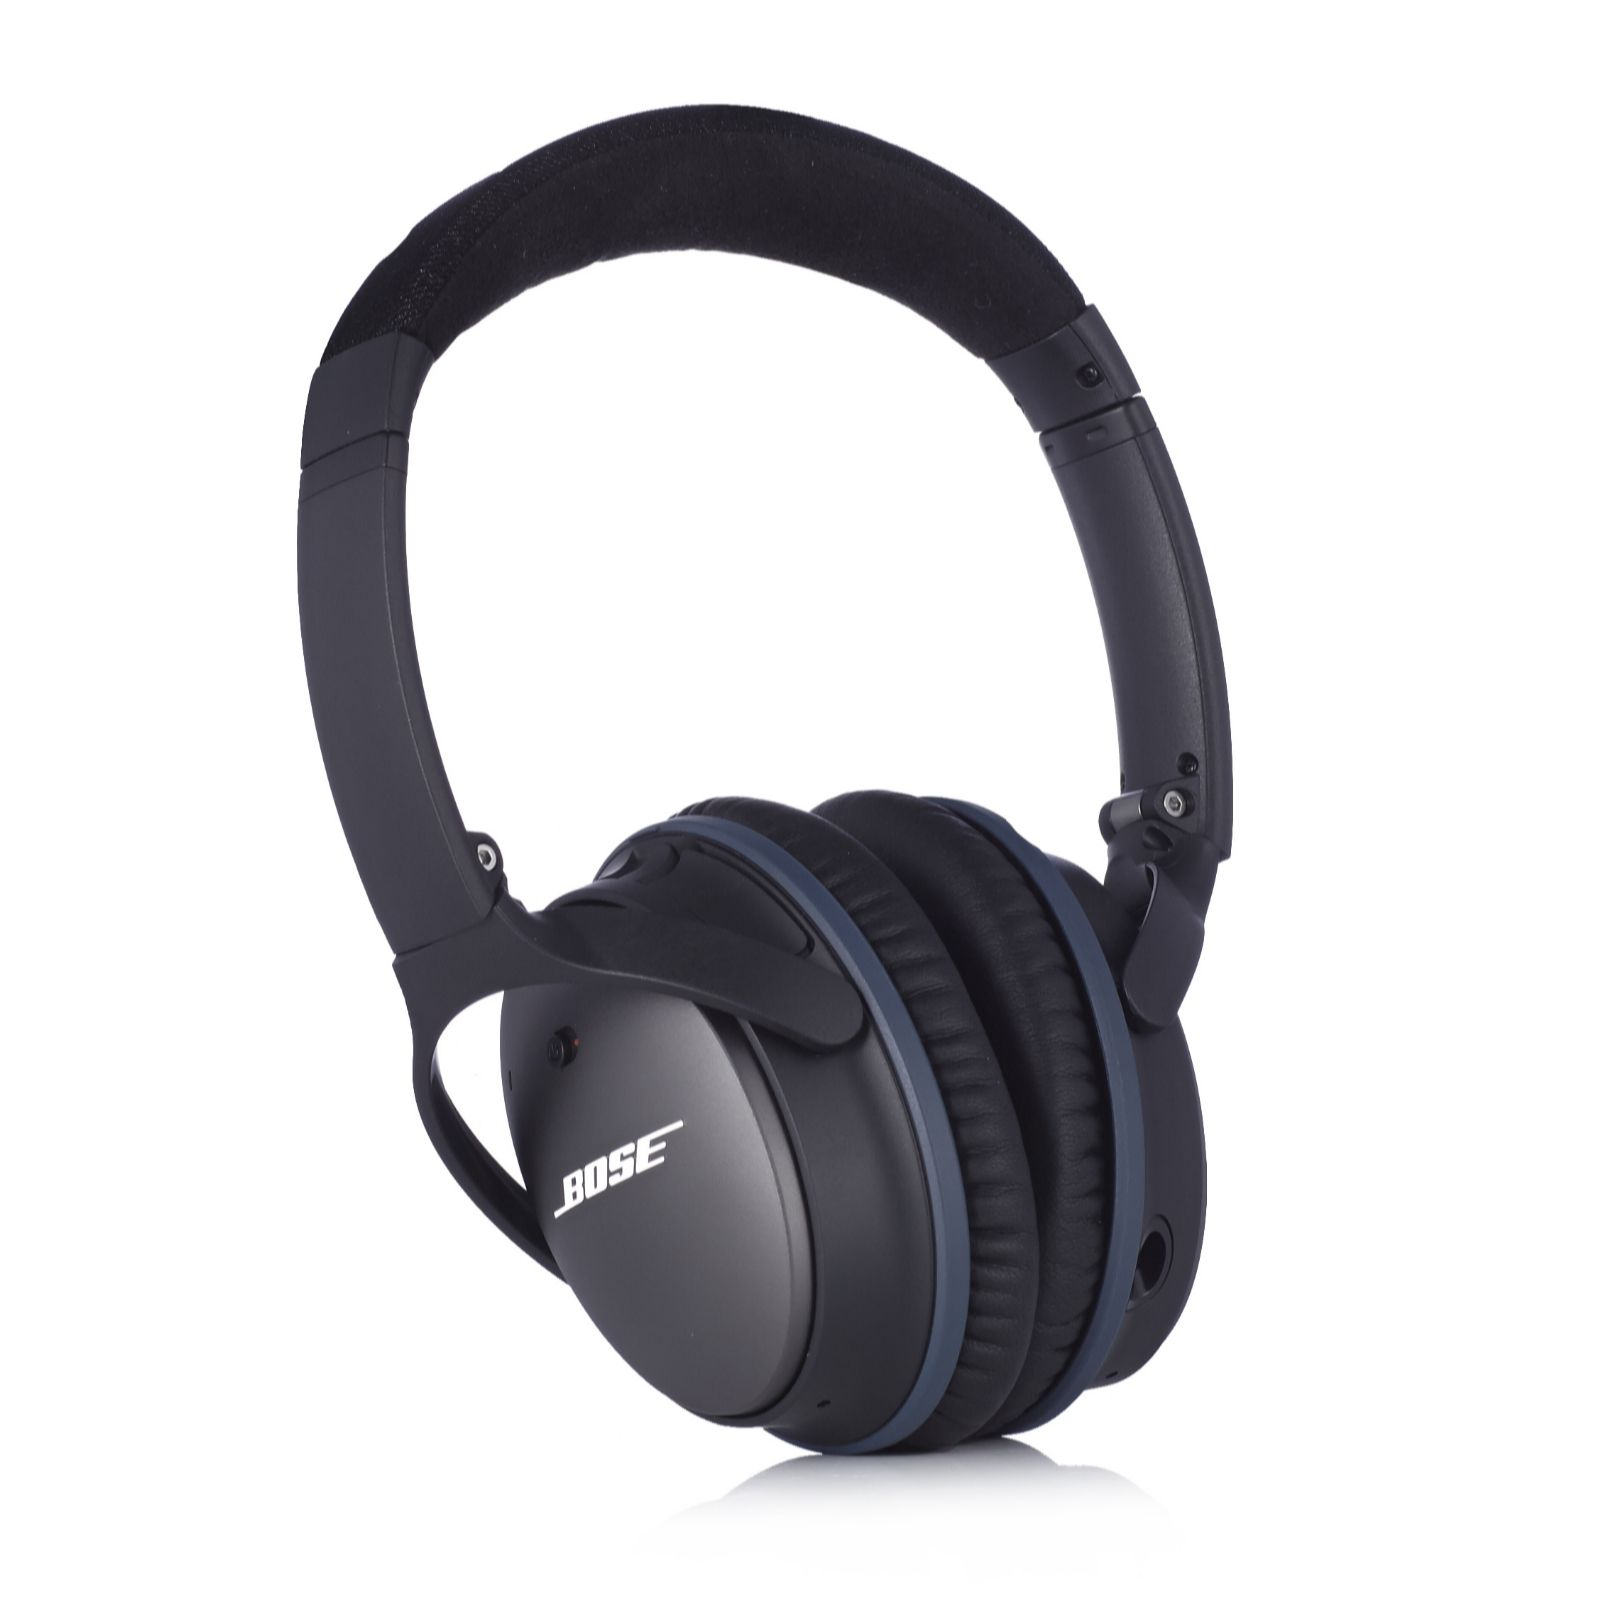 Bose QuietComfort 25 Noise Cancelling On-Ear Headphones for Apple Devices -  Page 1 - QVC UK 9e9839a490851